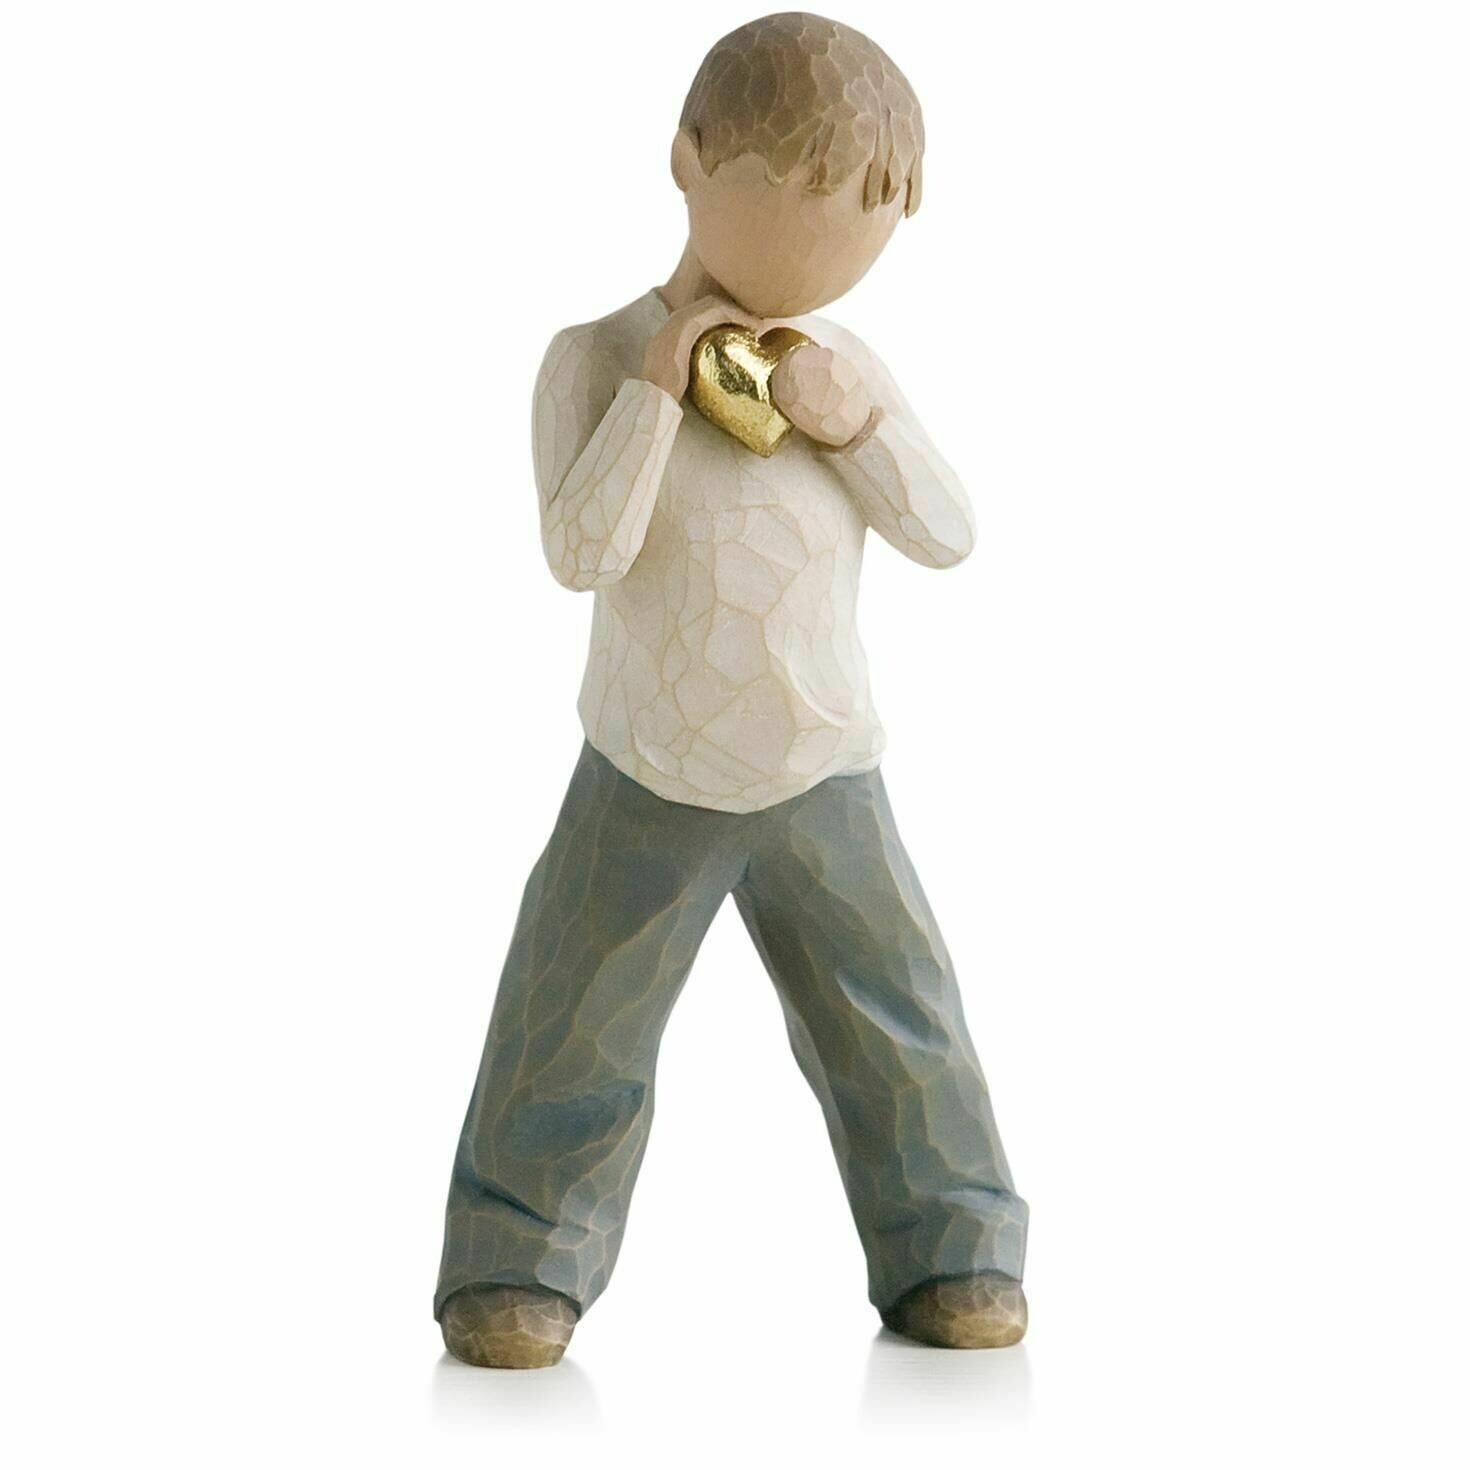 Willow Tree: Heart of Gold - Little Boy Holding Gold Heart